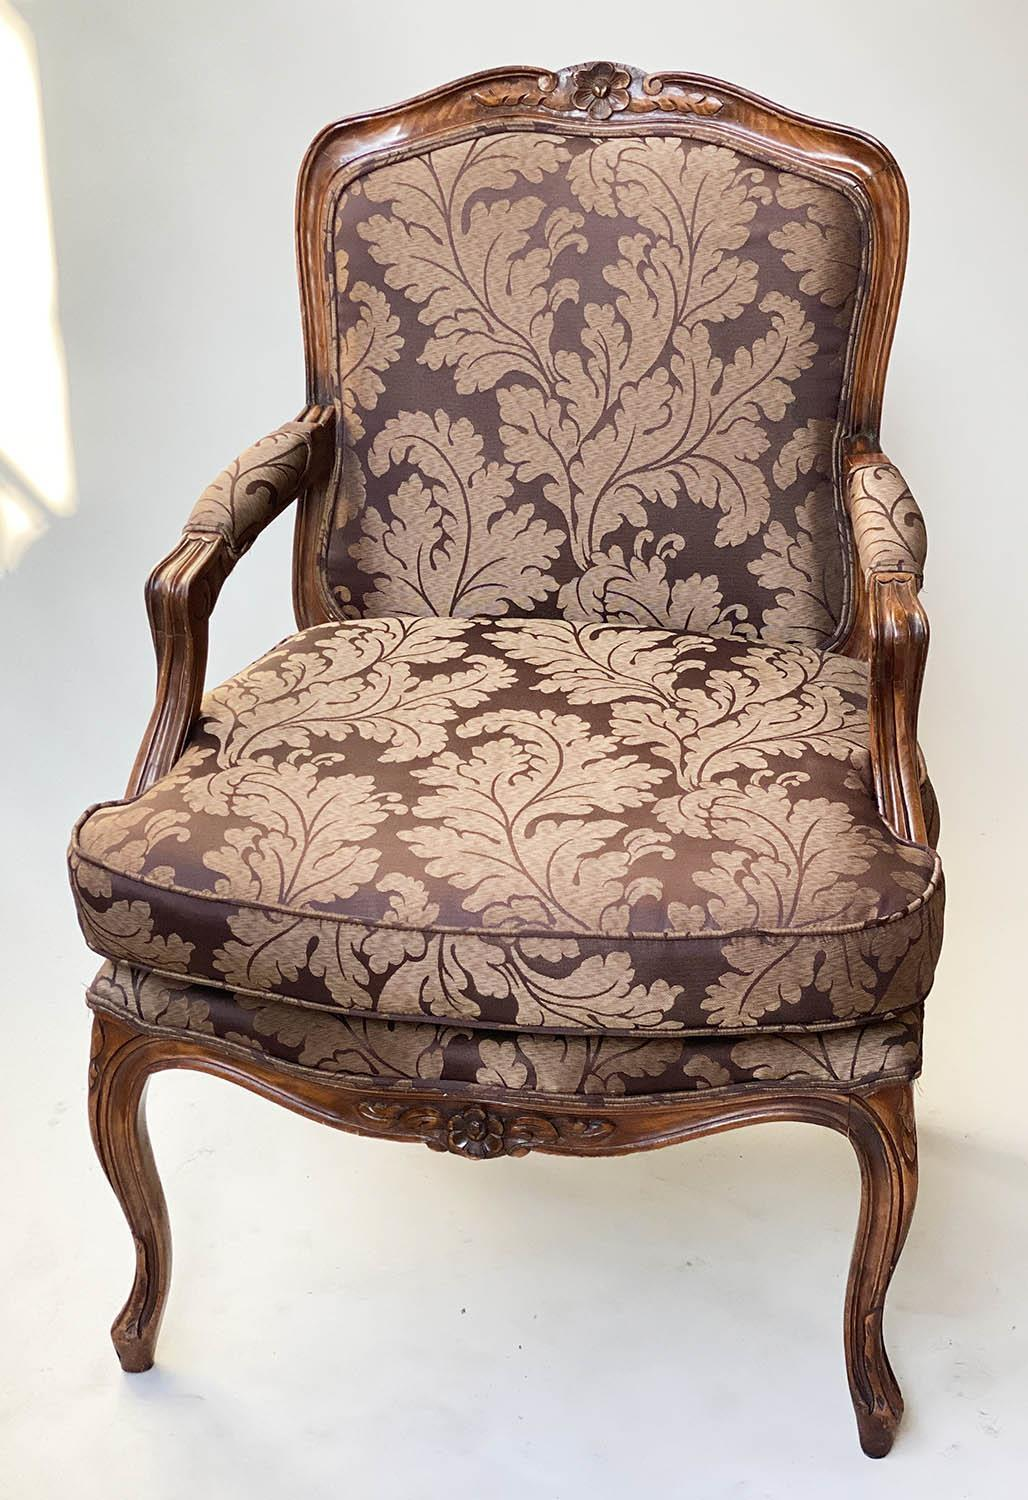 FAUTEUILS, a pair, French Louis XV style, stained walnut, with two tone brown leaf silk - Image 7 of 9